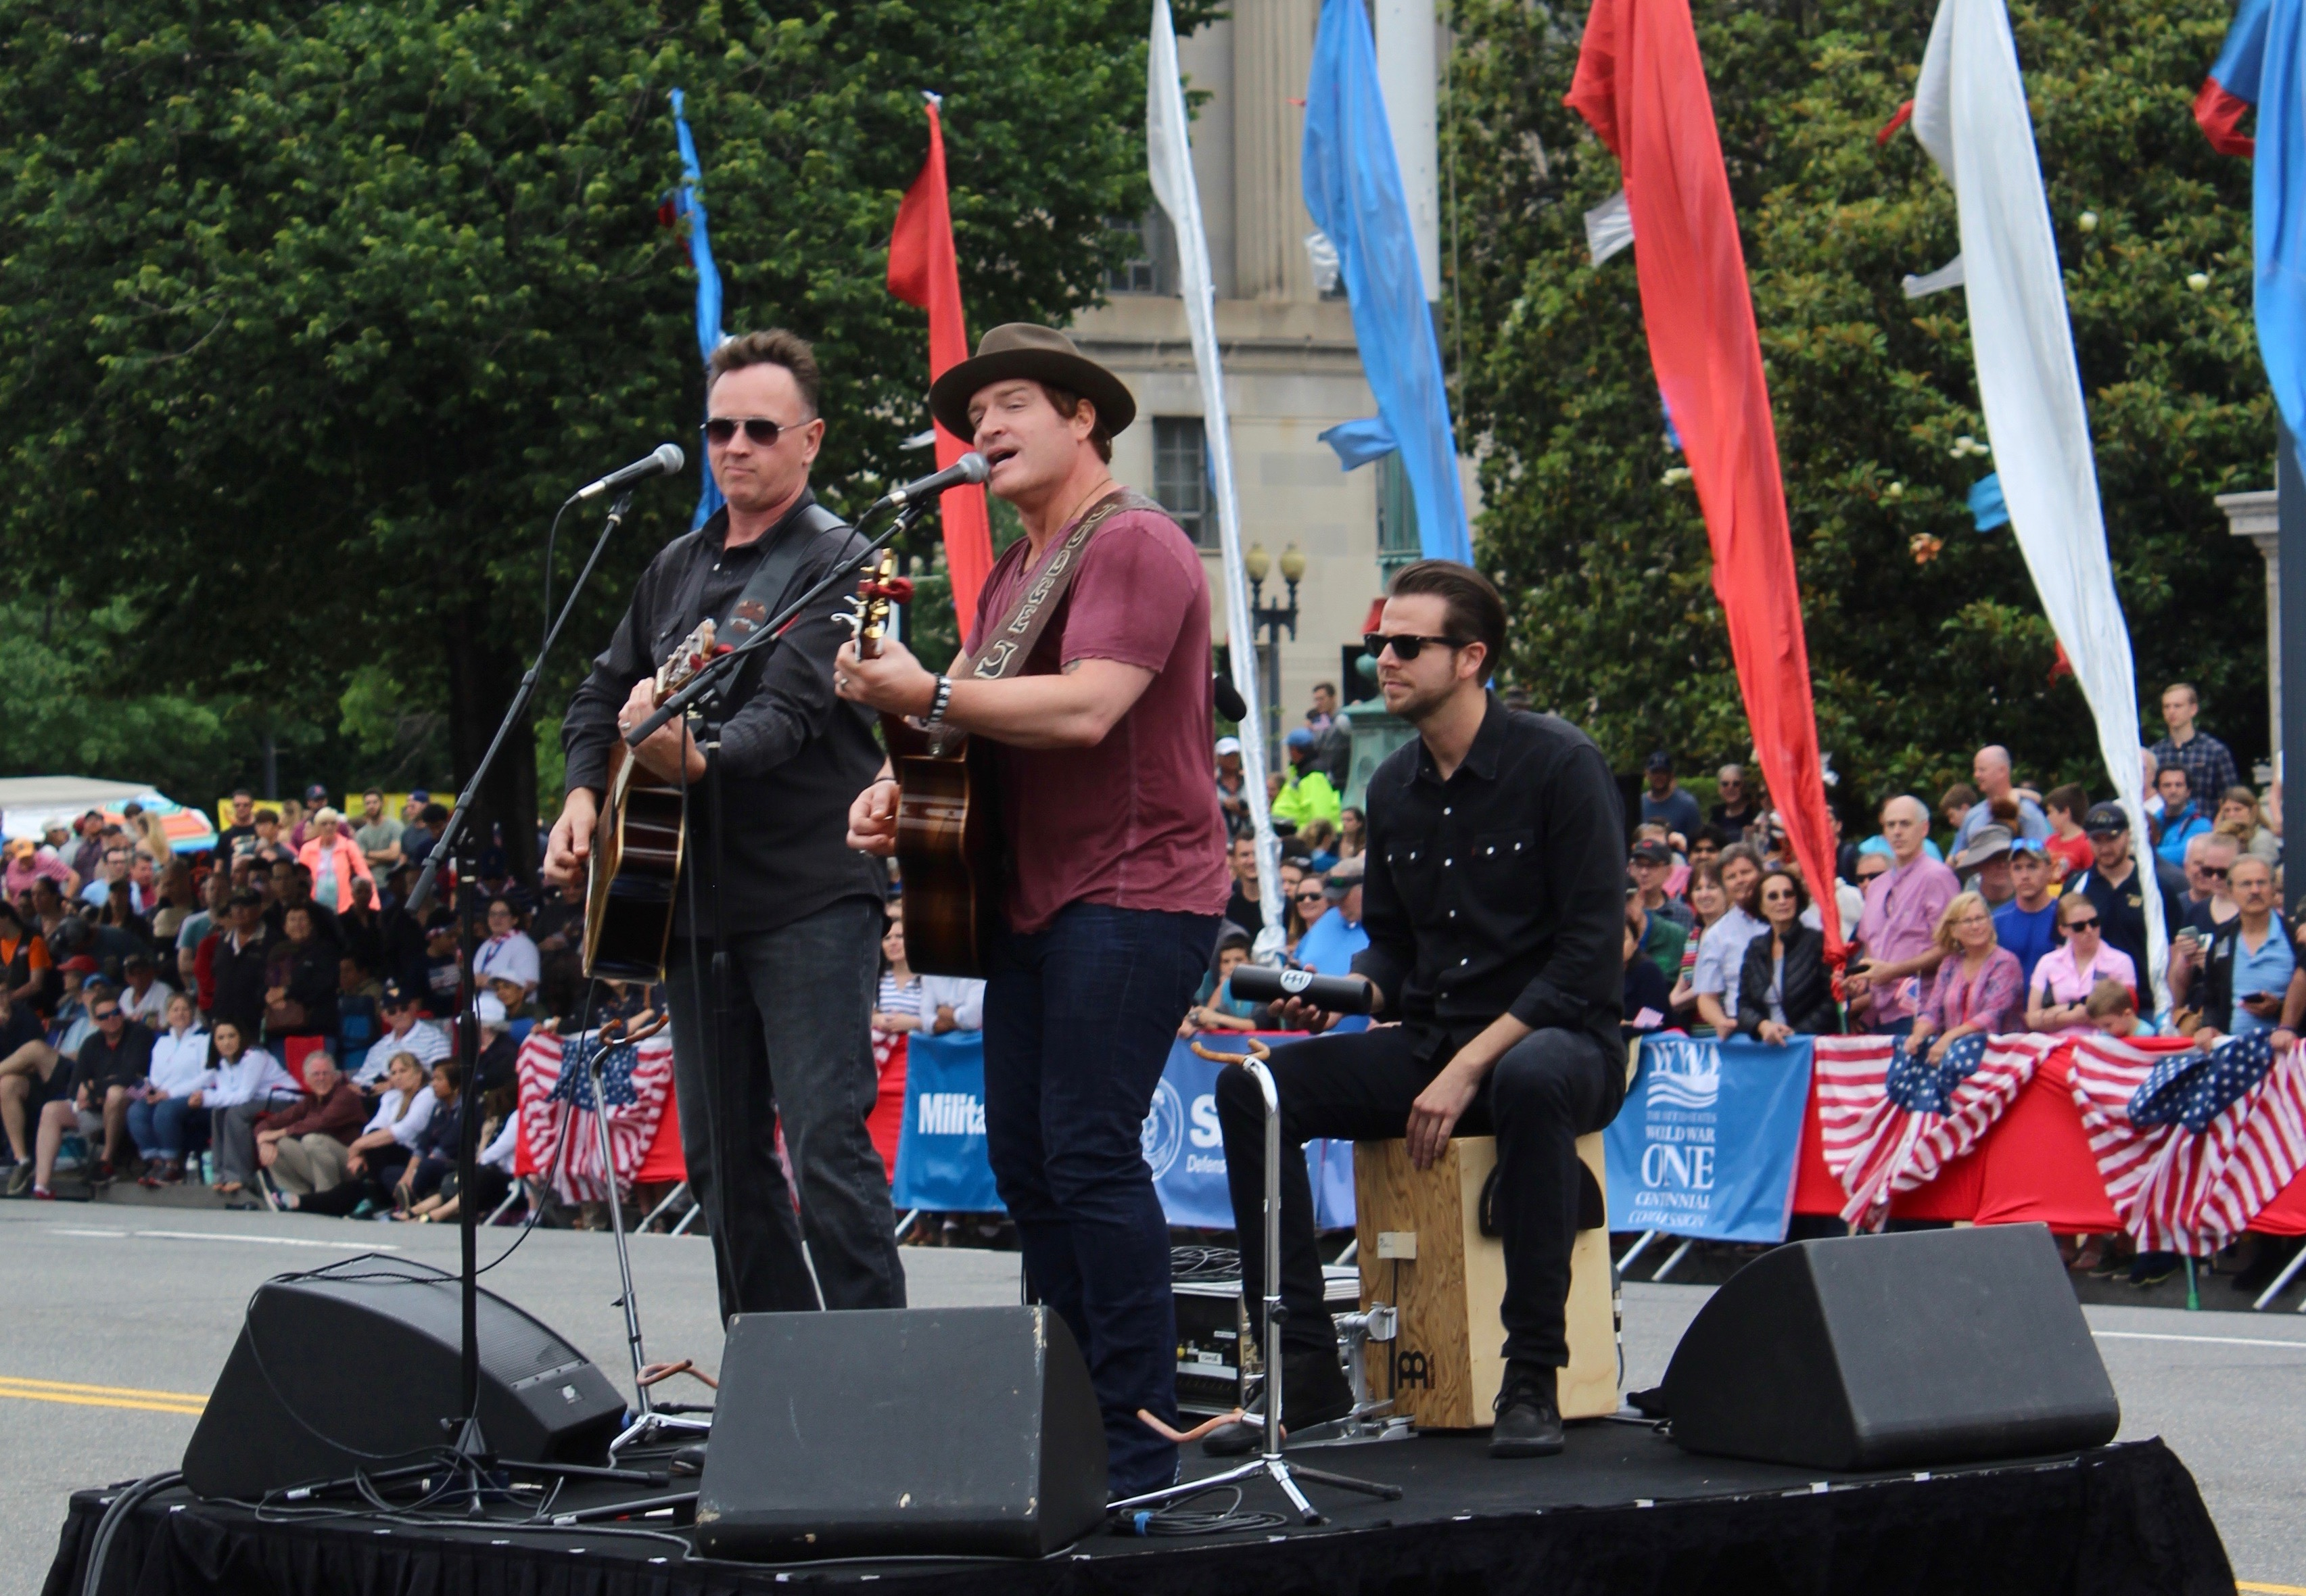 Country music artist Jerrod Neimann performs at the National Memorial Day Parade in Washington, D.C. (Julia Nista/The Daily Caller)